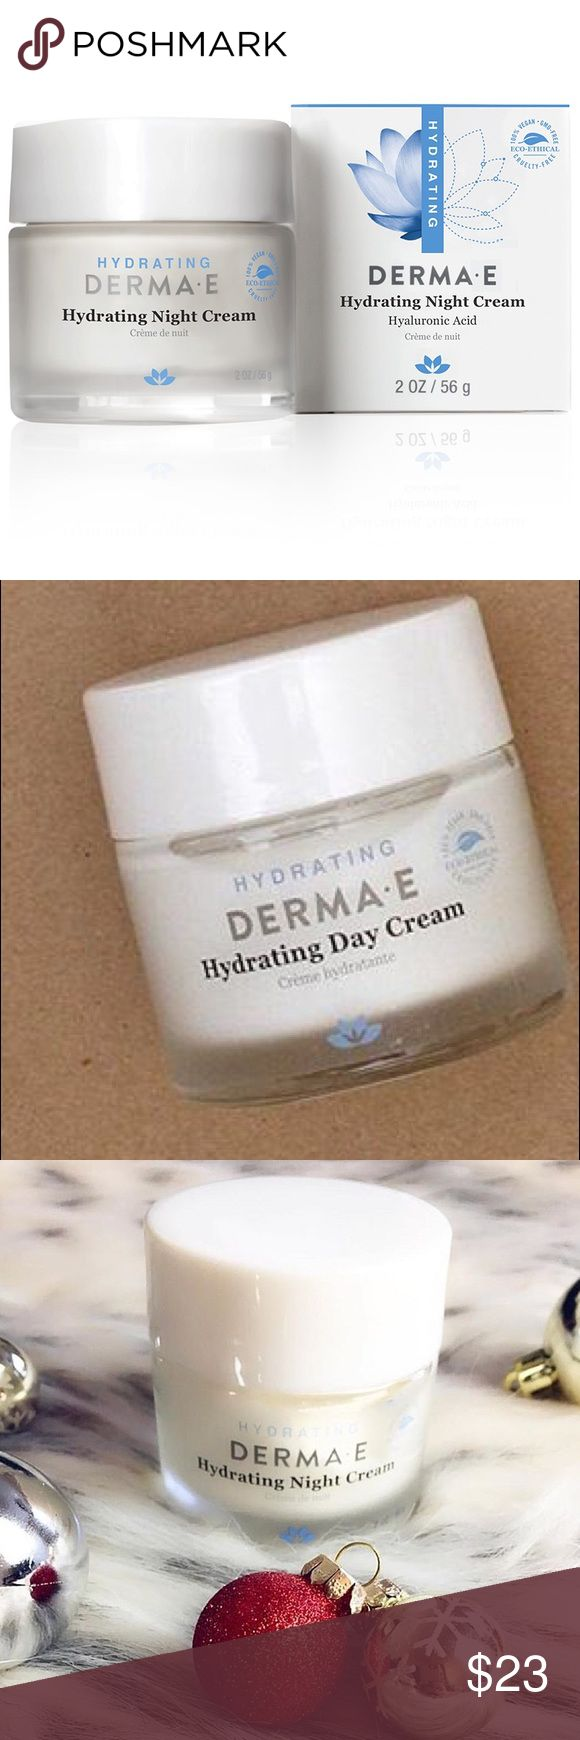 Derma E Hydrating Night Creme w/ Hyaluronic Acid Derma E Hydrating Night Creme With Hyaluronic Acid delivers intense moisture to restore and rejuvenate your skin while you sleep. Hyaluronic acid retains moisture to keep the skin hydrated and also has a plumping effect filling in fine lines and wrinkles for smoother, younger-looking skin. Vitamin A soothes redness and irritation due to dry, itchy skin. derma e Makeup